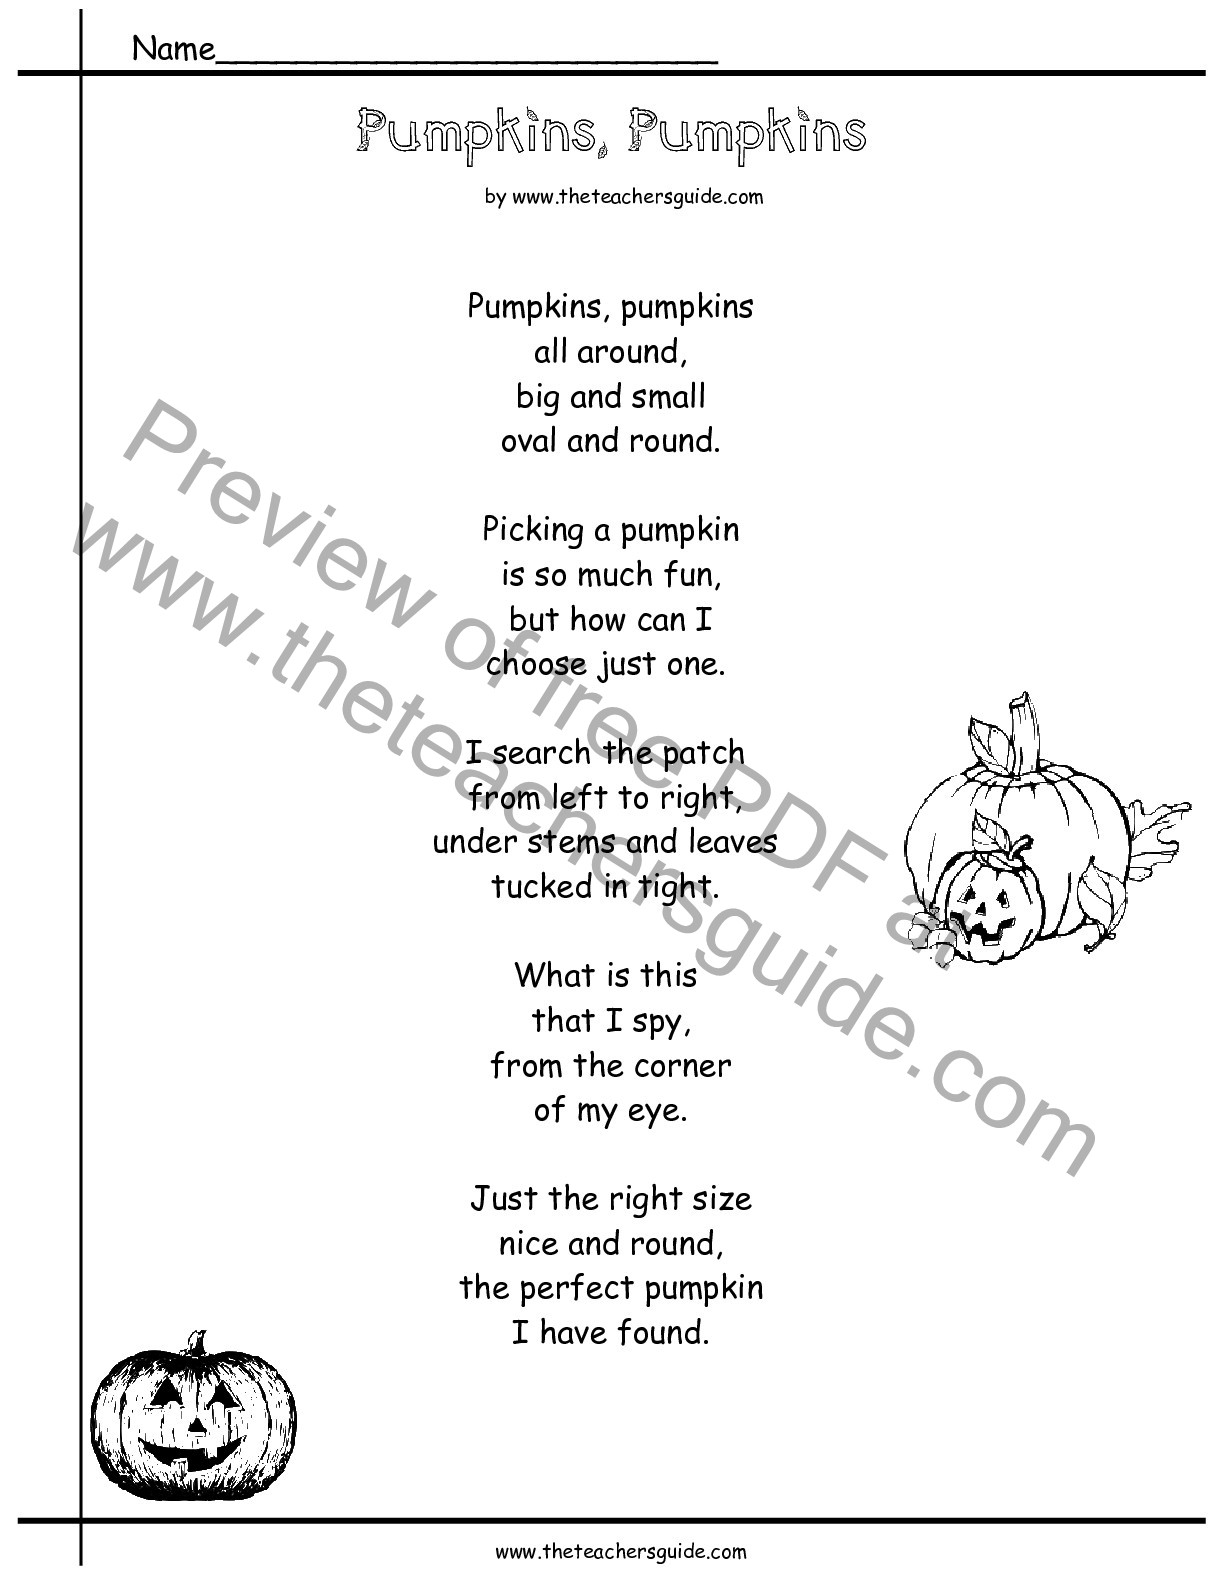 Poetry Worksheets Middle School Grade 8 Math State Test social Skills Worksheets Middle